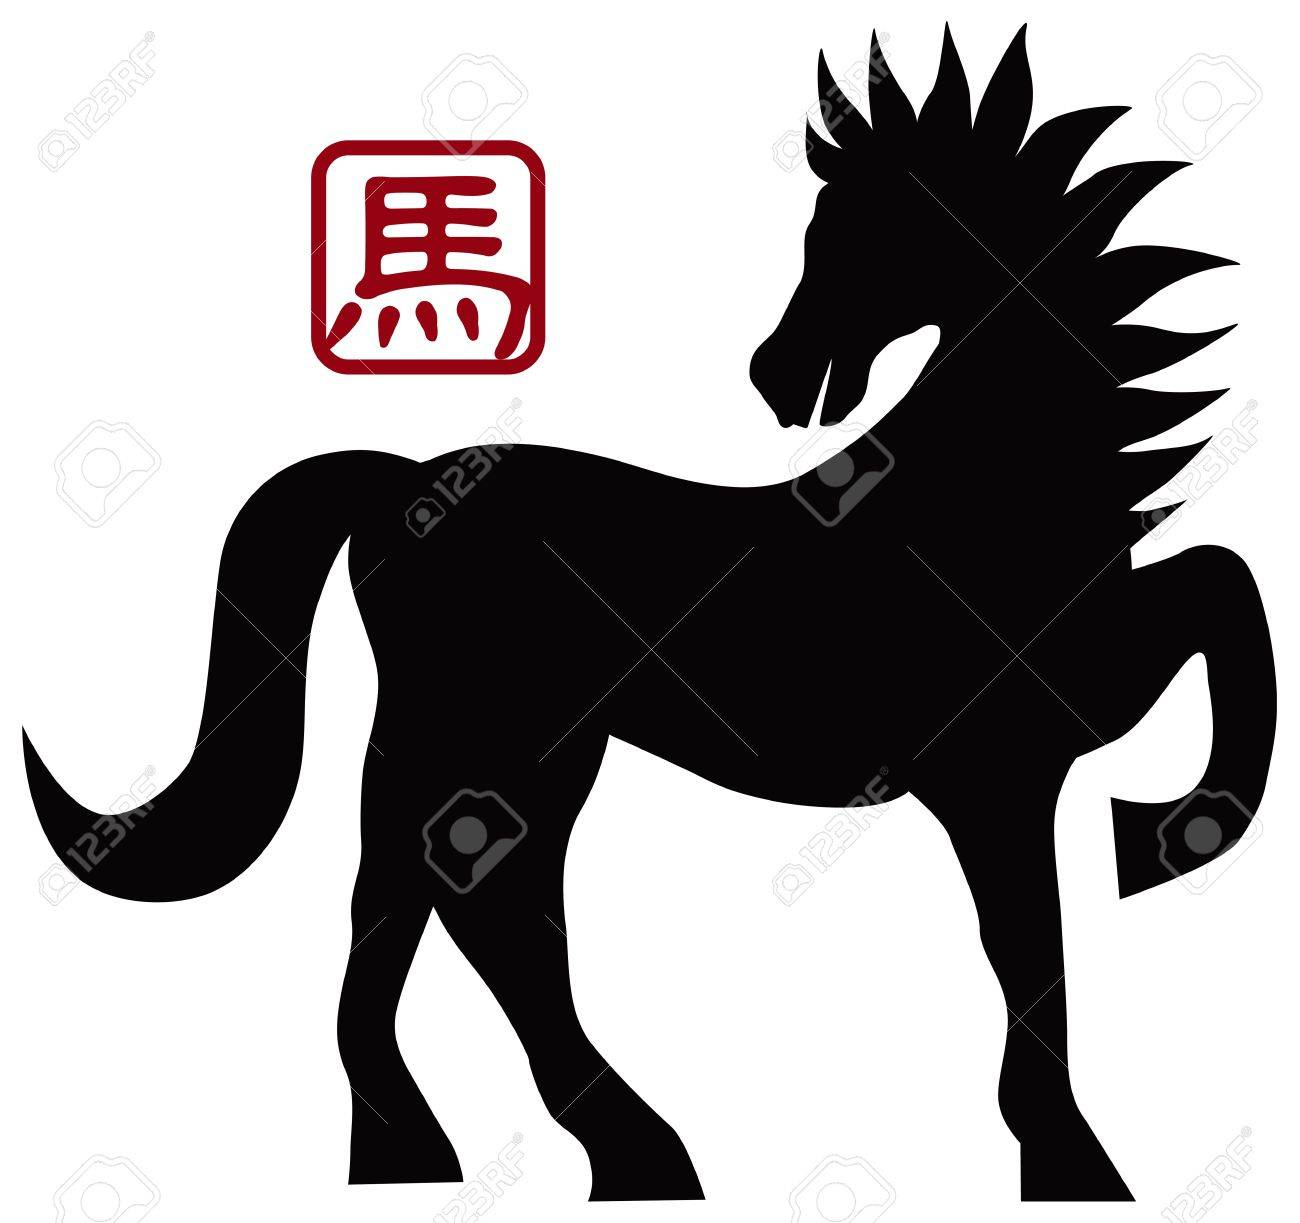 Horse text symbol images symbol and sign ideas 2014 chinese lunar new year of the horse zodiac silhouette and 2014 chinese lunar new year biocorpaavc